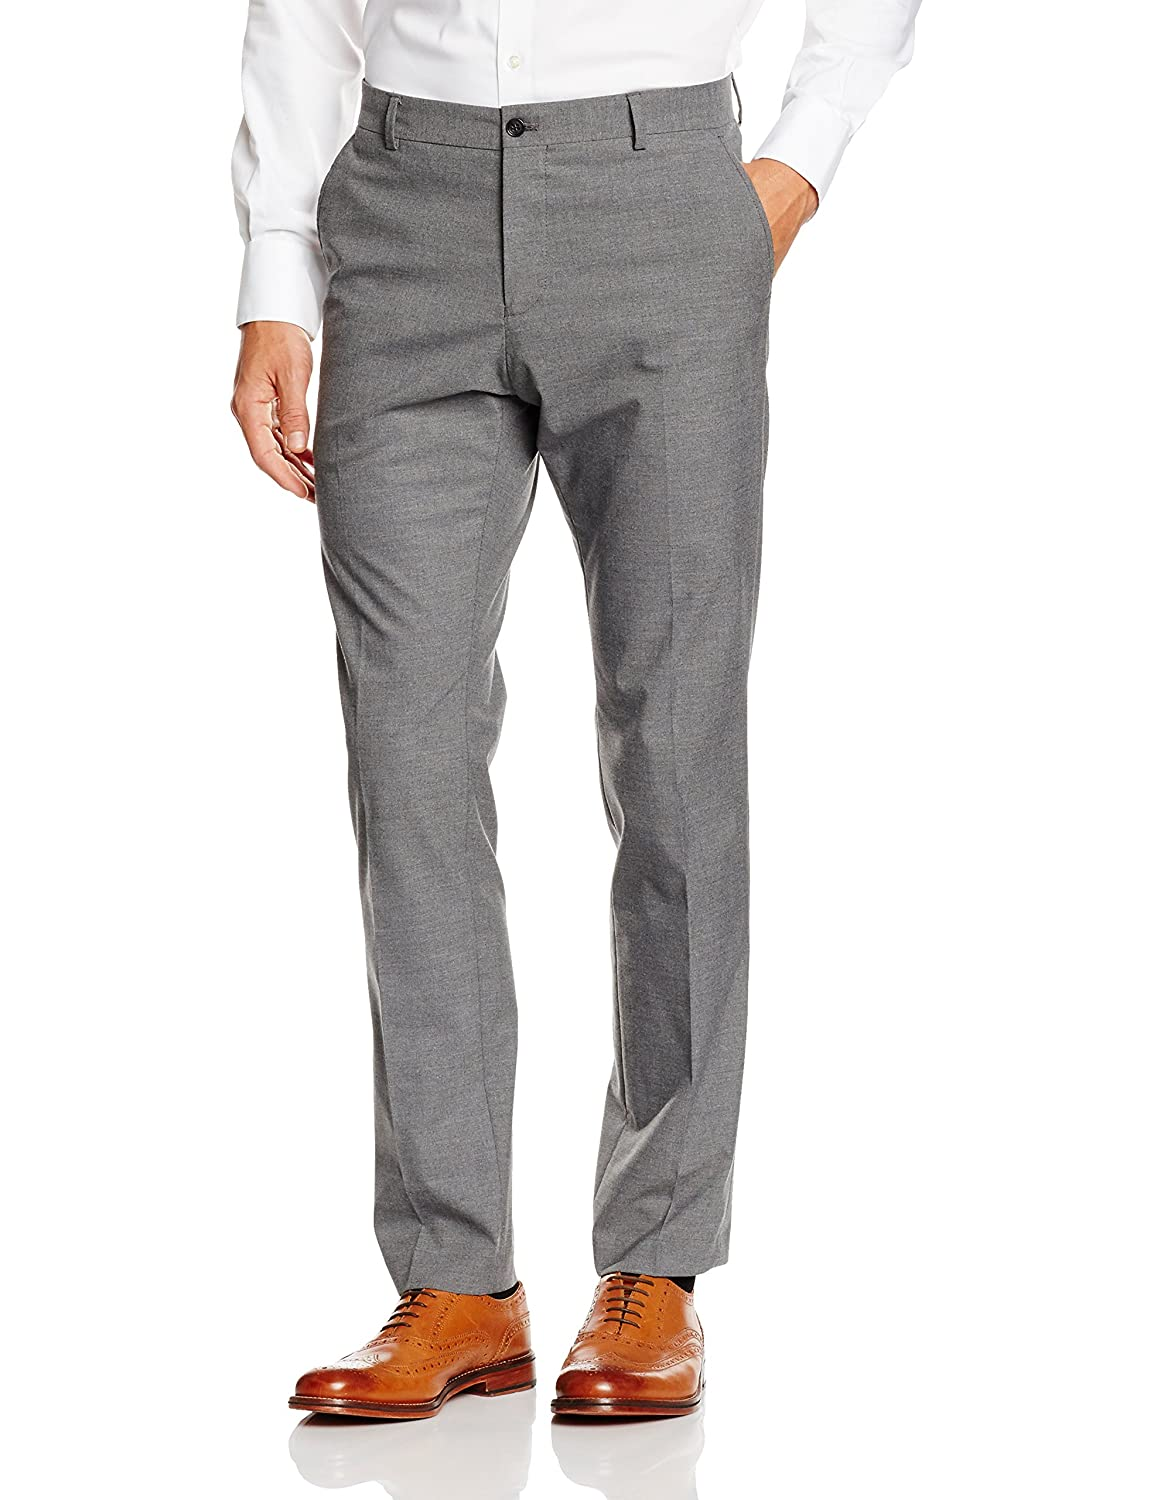 SELECTED HOMME Pantaloni Uomo 16051394